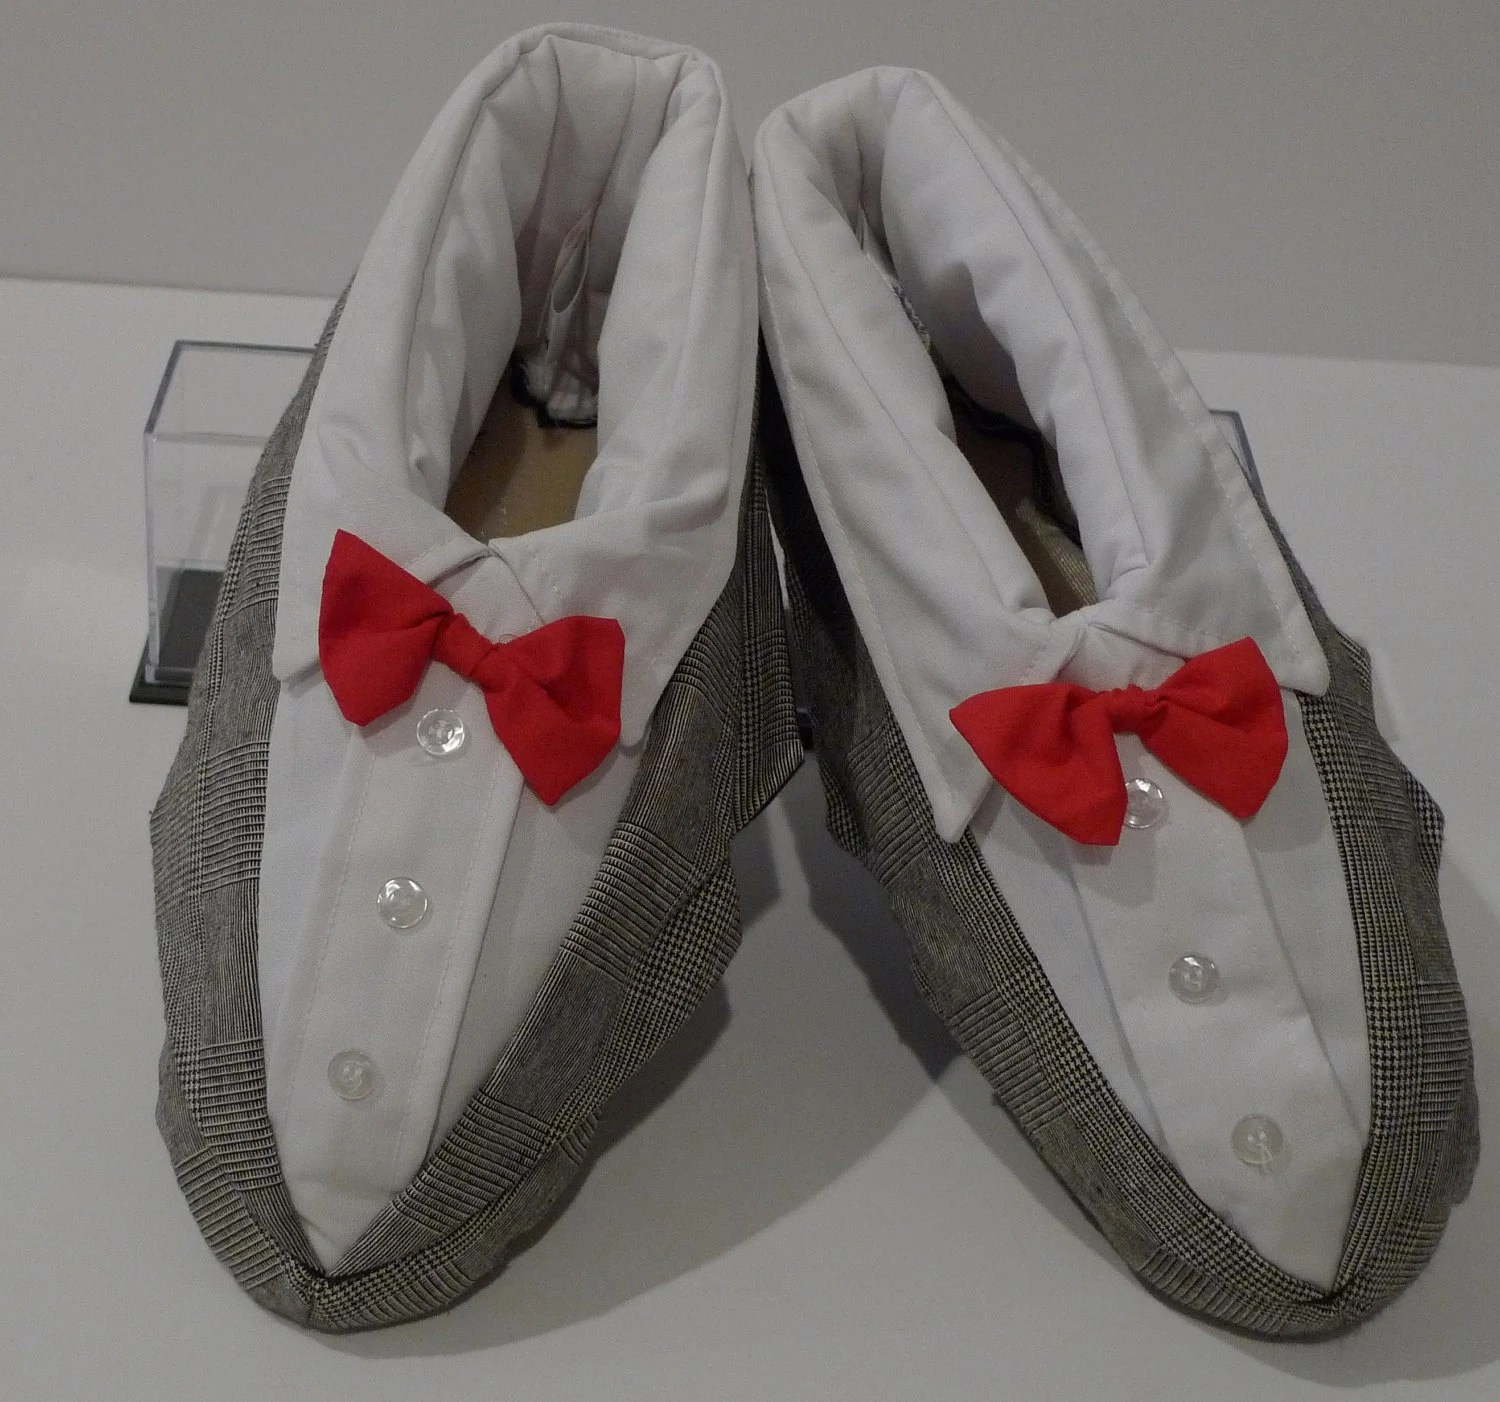 Pee Wee Herman House Slippers